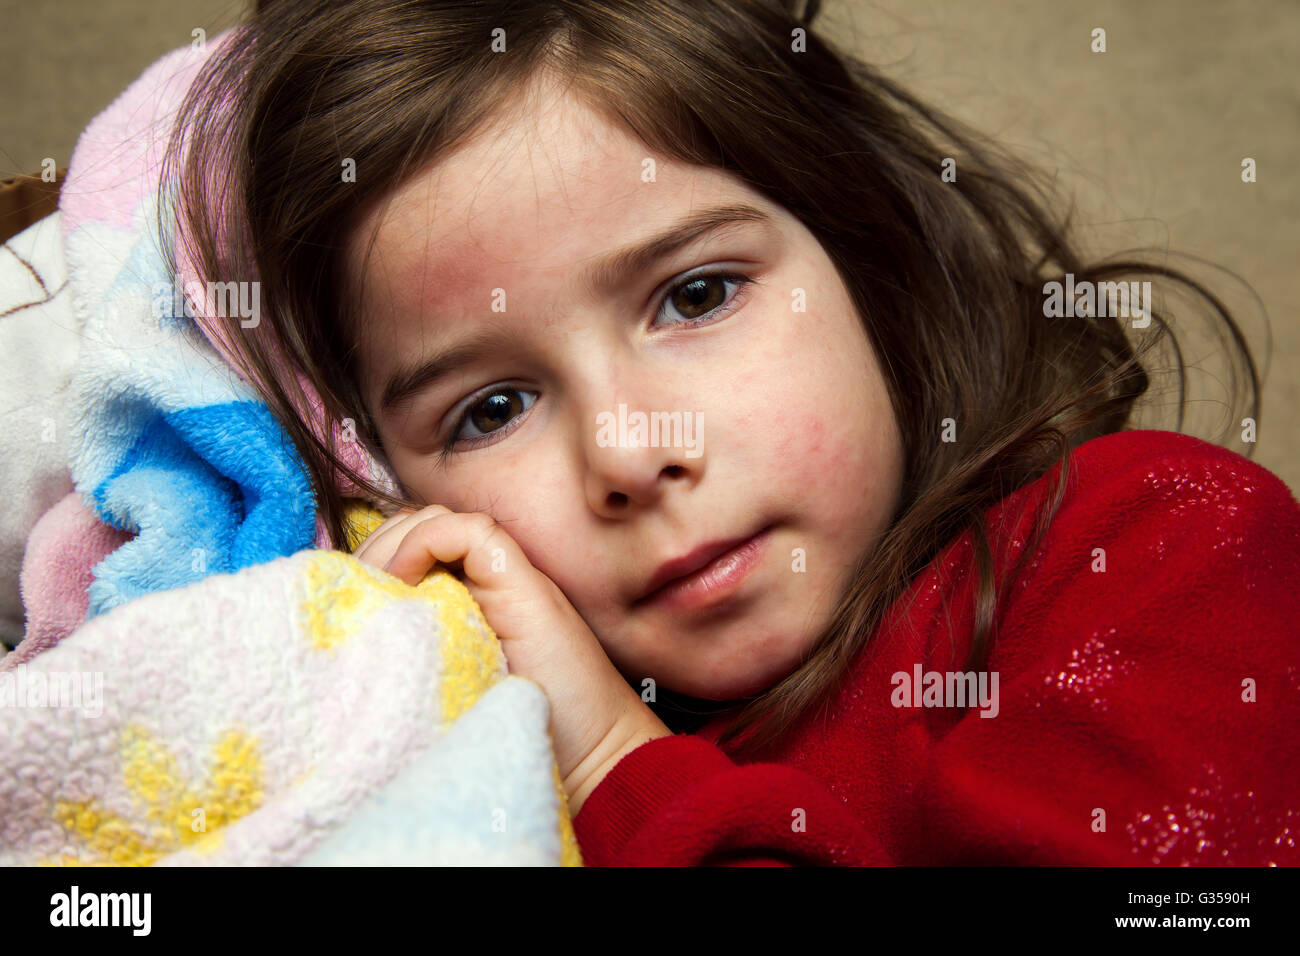 A young girl with a fever rash cuddles with a blanket and looks at the camera with a blank expression. - Stock Image